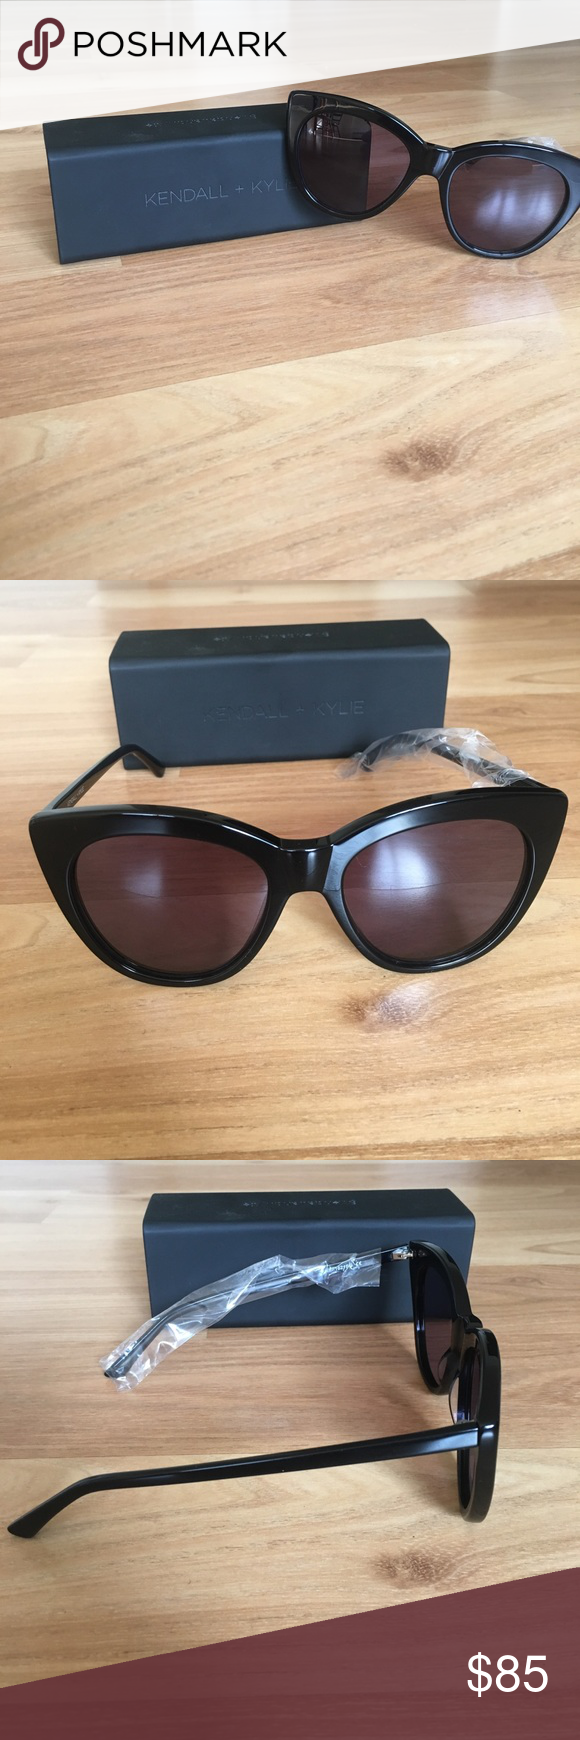 1b5be20eeb Kendall   Kylie black sunglasses Pair of black cat eye sunglasses by Kendall    Kylie. Never worn. Brand new